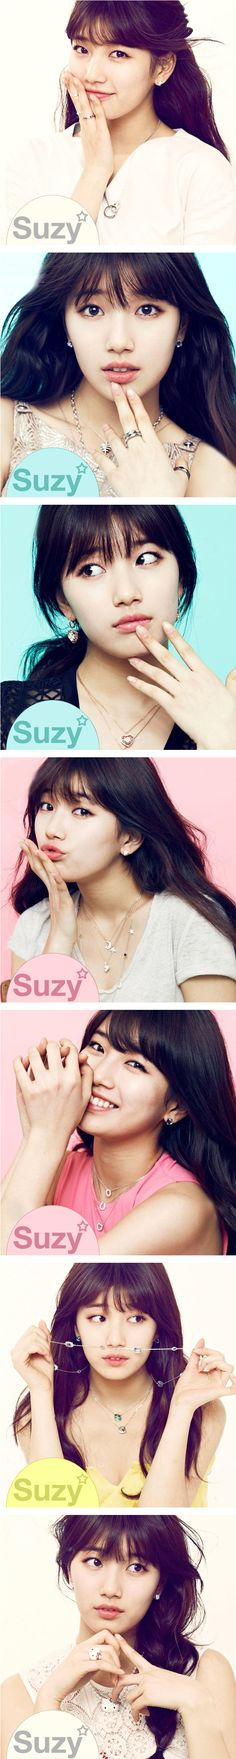 I don't even care, Suzy is my official female celebrity crush #perfection <3